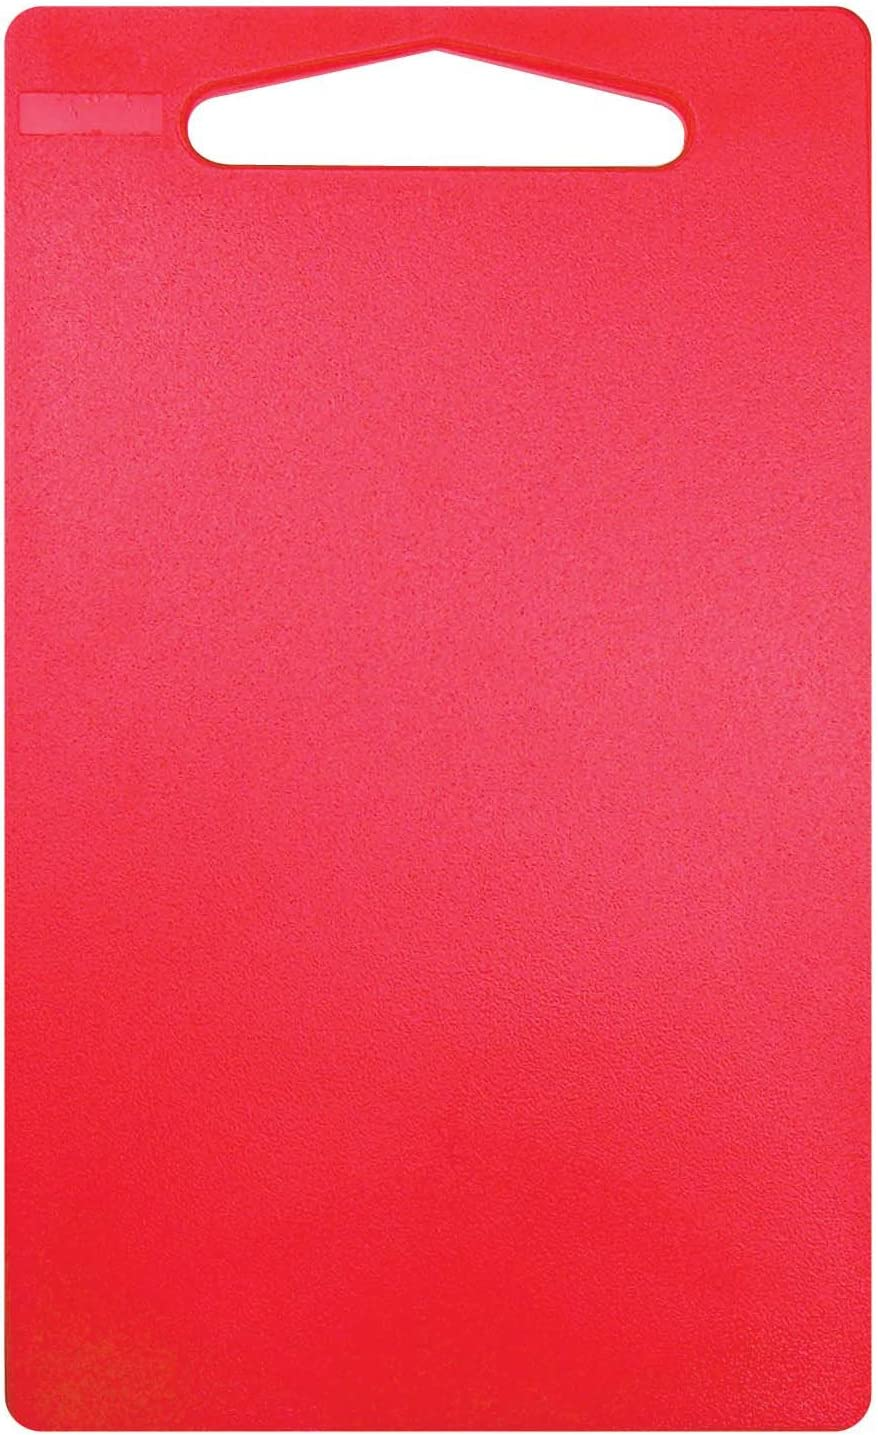 Linden Sweden Anita Cutting Board with Handle- Safe for Meat and Produce, Won't Dull Knives- Slim, Lightweight Design for Easy Storage, Dishwasher-Safe, Sm, Red-9.25